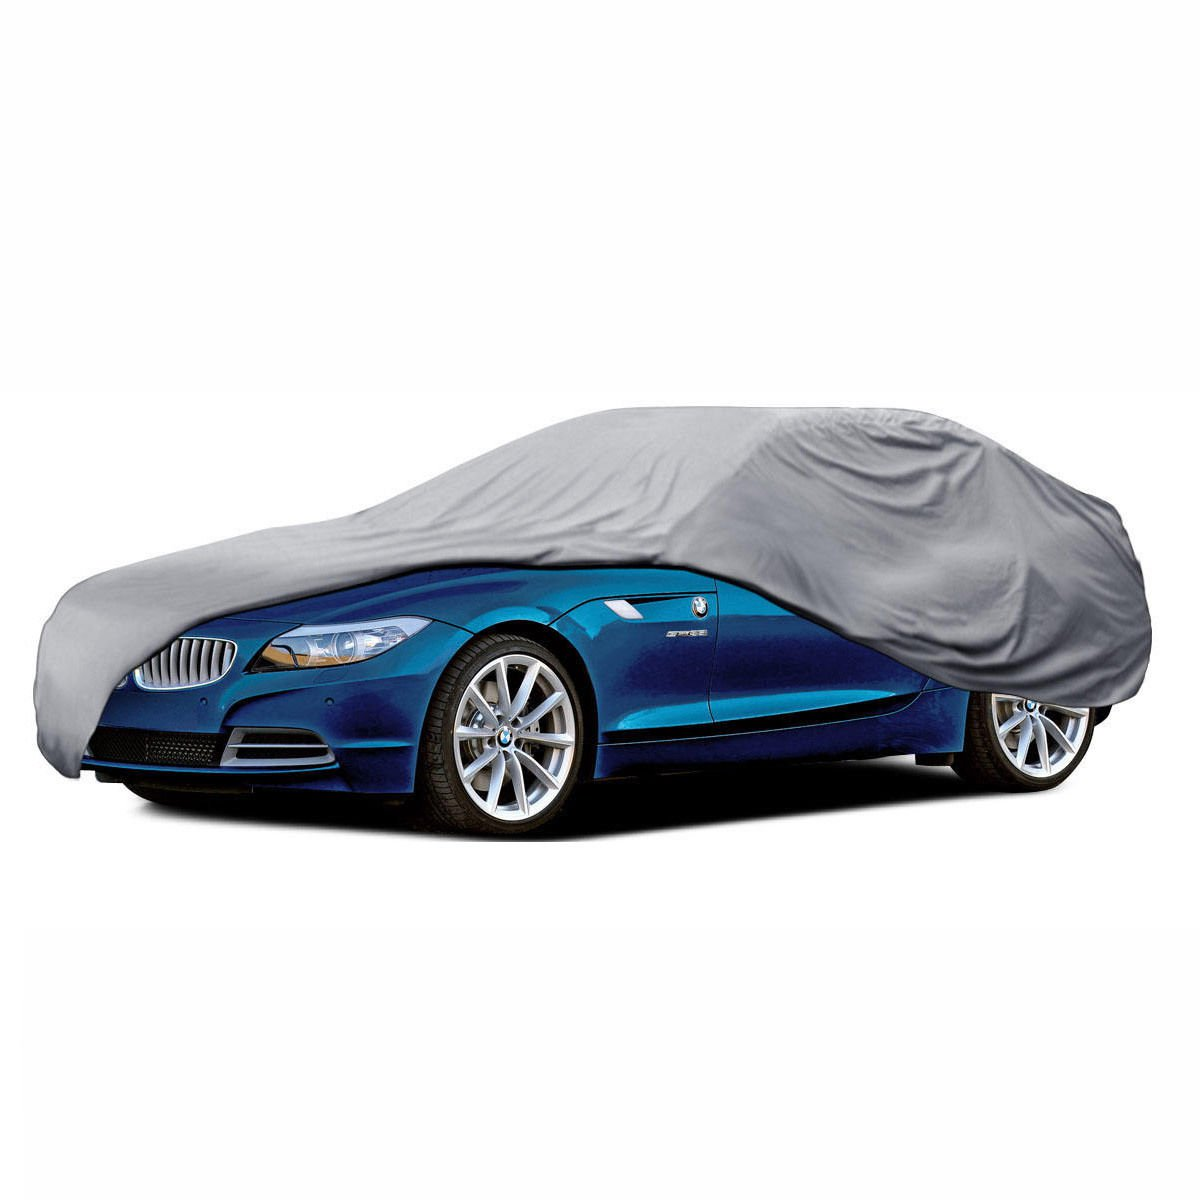 Bmw Z4 Car Cover: Car Cover For BMW Z Series Outdoor Waterproof All Weather